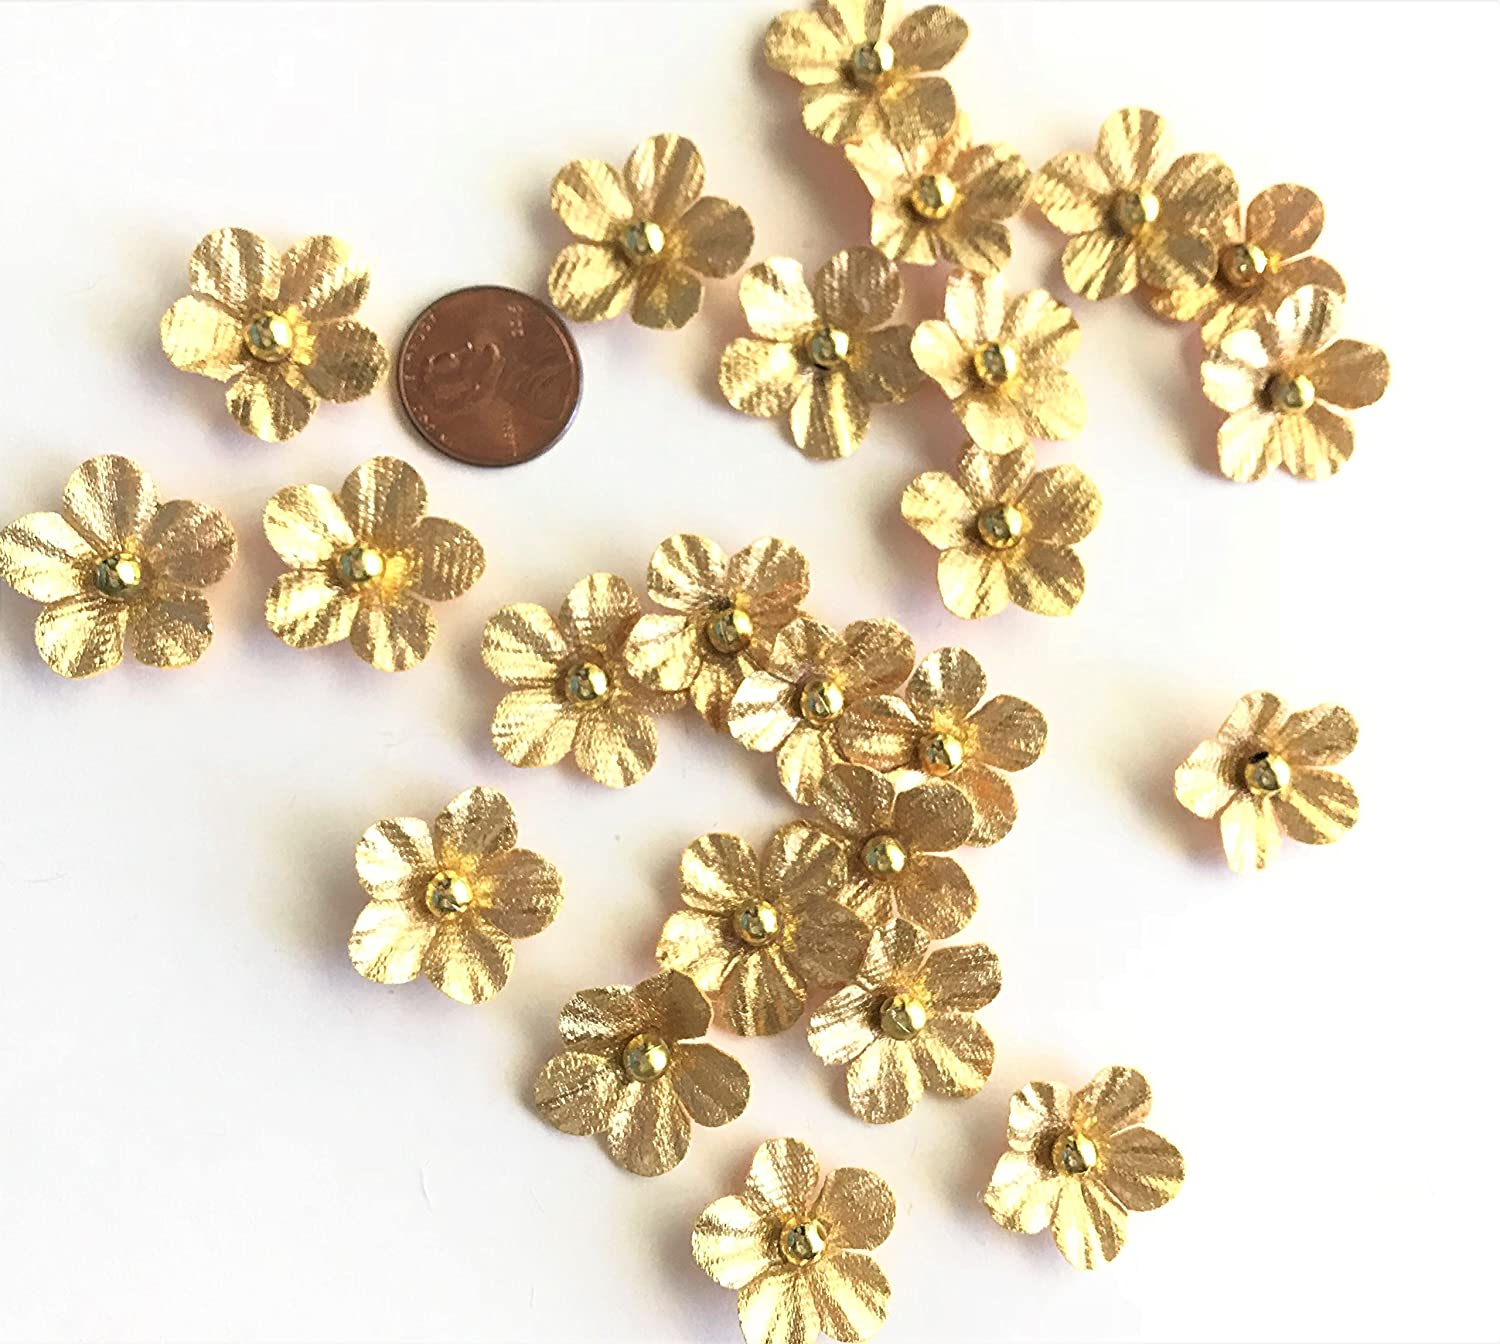 Sewing on Apparel Craft Projects Scrapbooking Mini Faux Gold Flower Embellishments Elegant Blooms /& Things Cards 24 Pcs